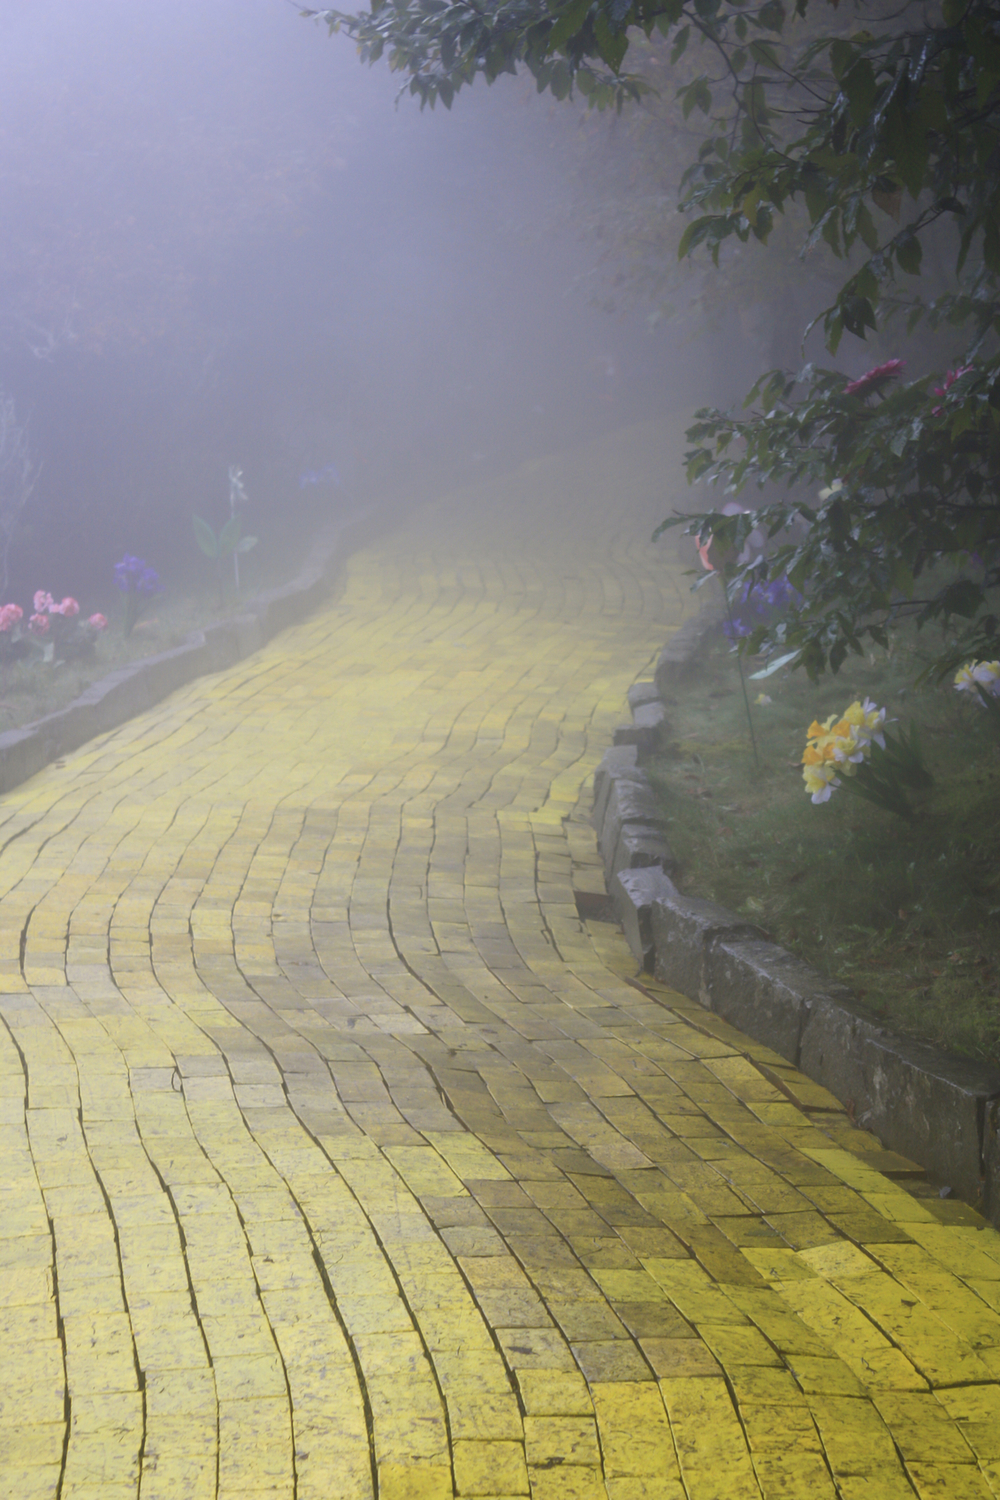 Along the yellow brick road, we learned the Wizard will ask us to choose one of four wishes.